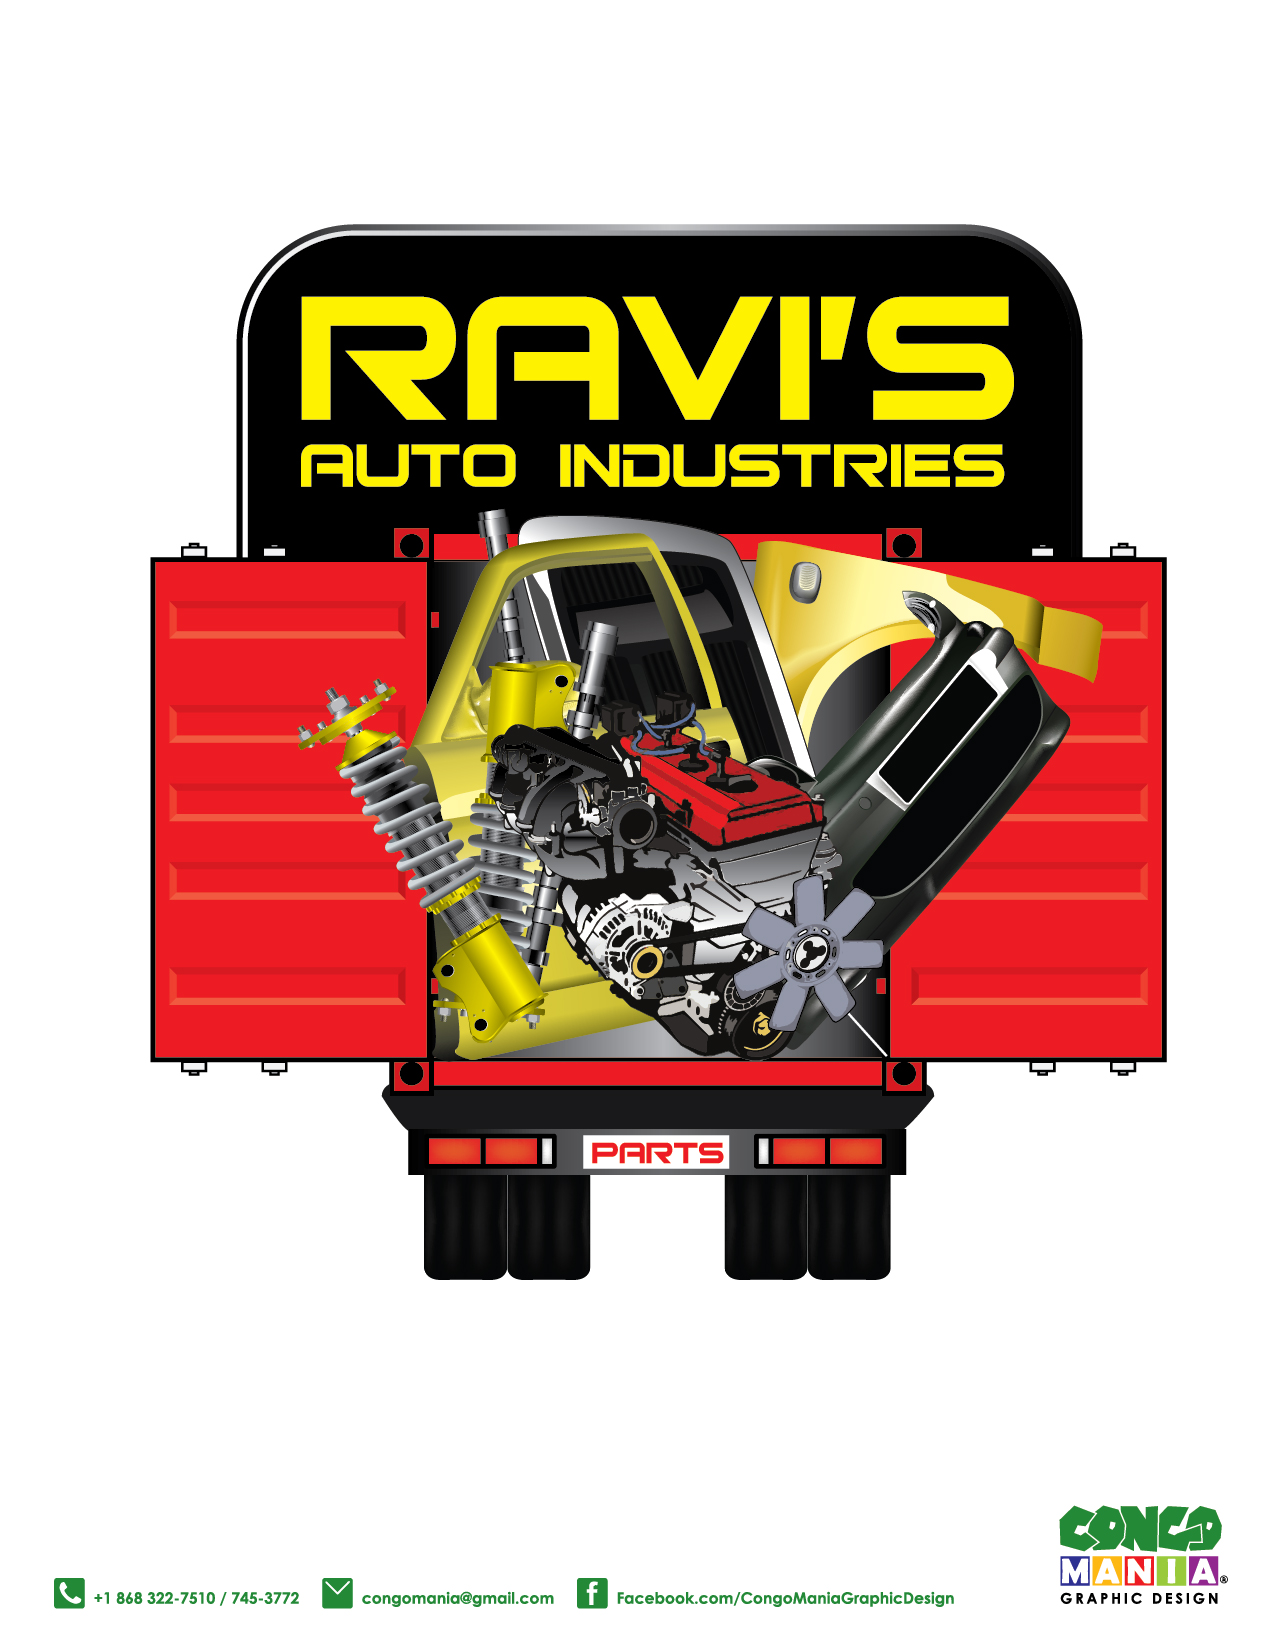 Ravi's Auto Industries